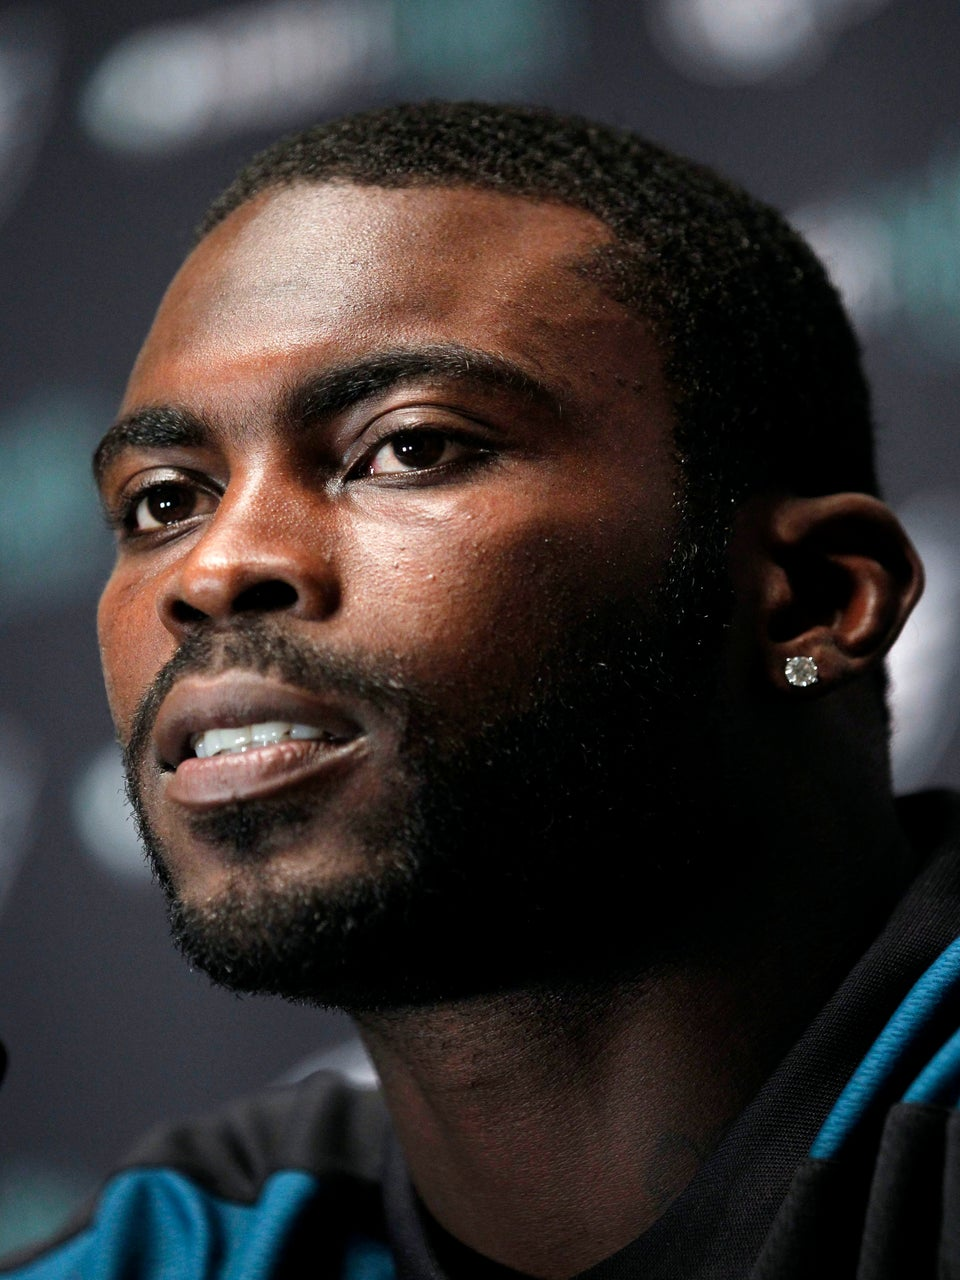 Michael Vick Signs a $100-Million Deal